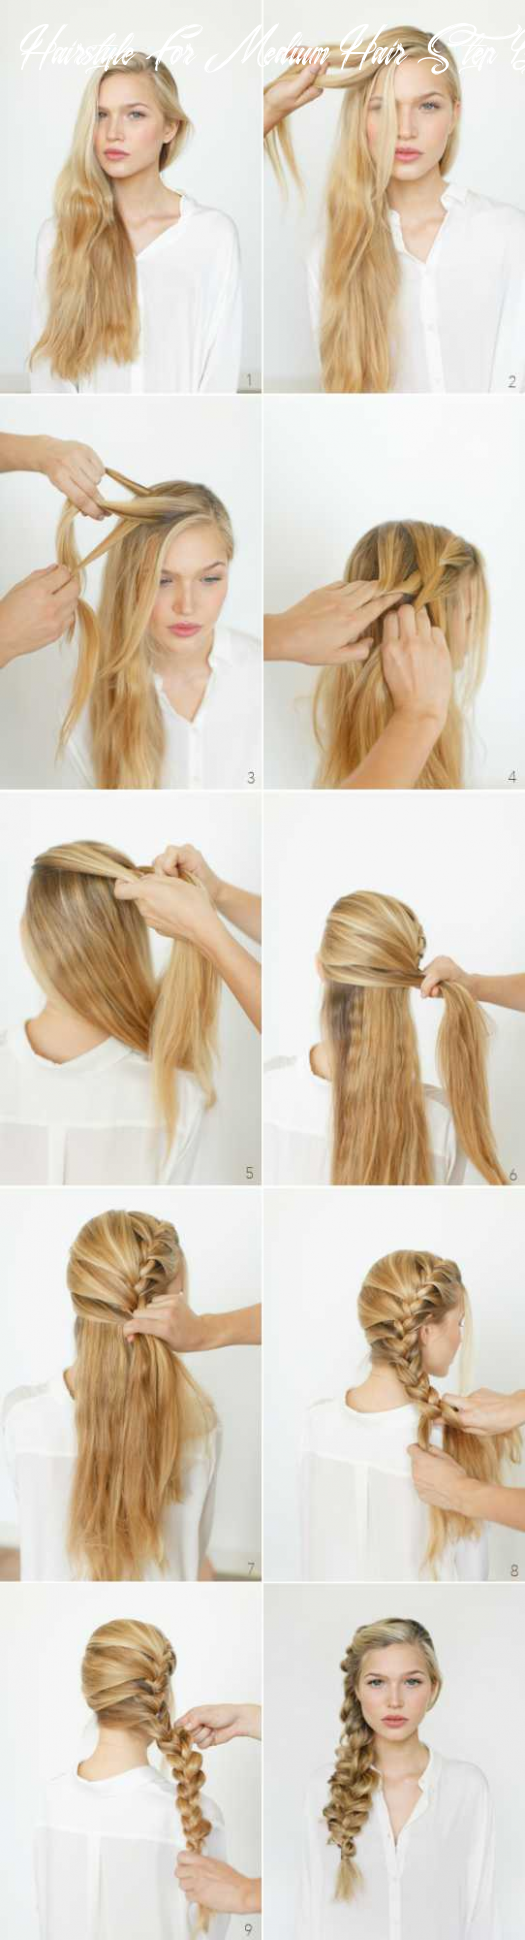 9 easy step by step tutorials for perfect hairstyles hairstyle for medium hair step by step